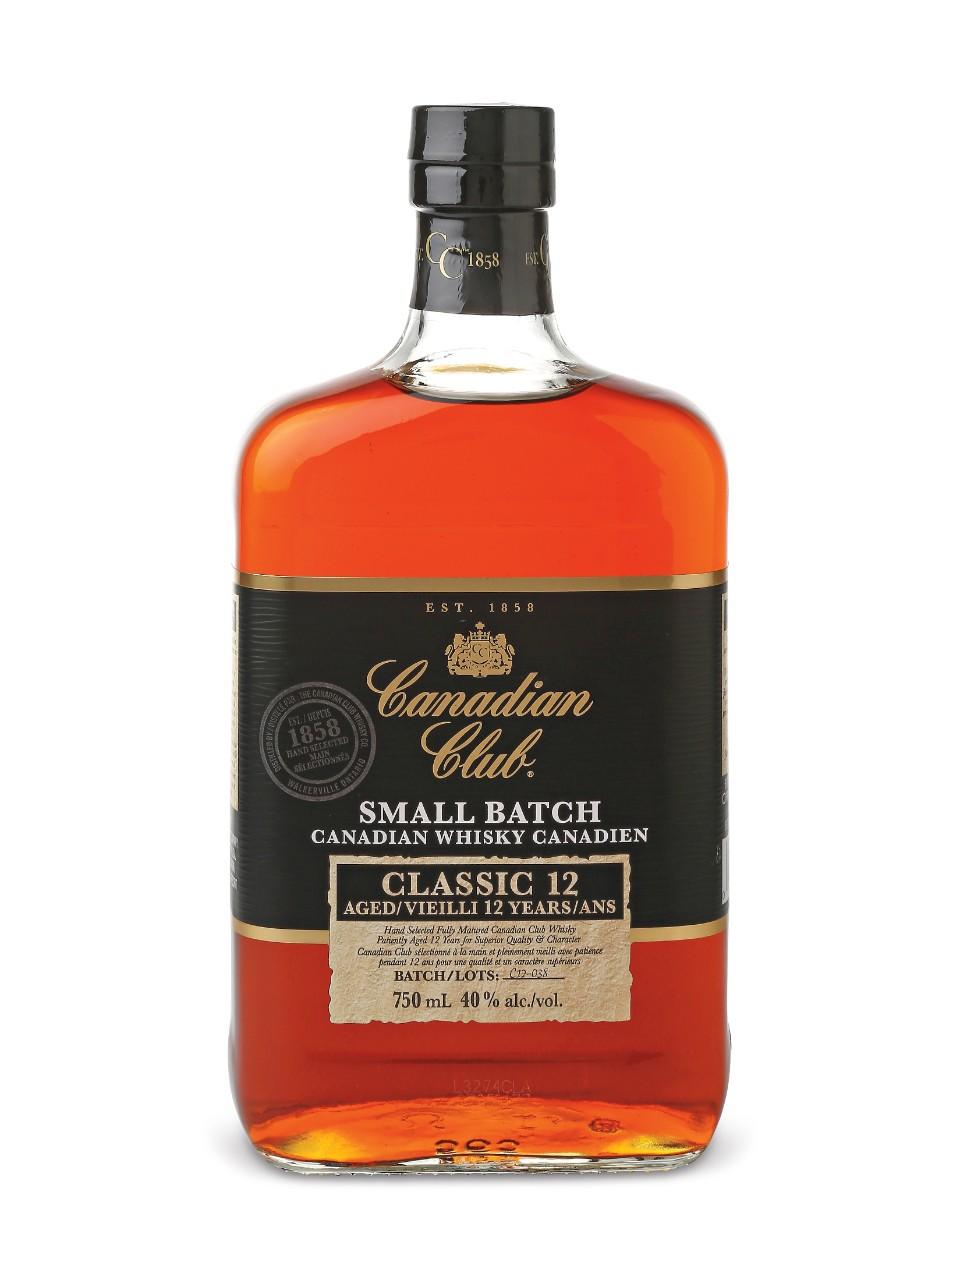 Canadian Club Small Batch 12 Year Old Whisky 750ml $17.99